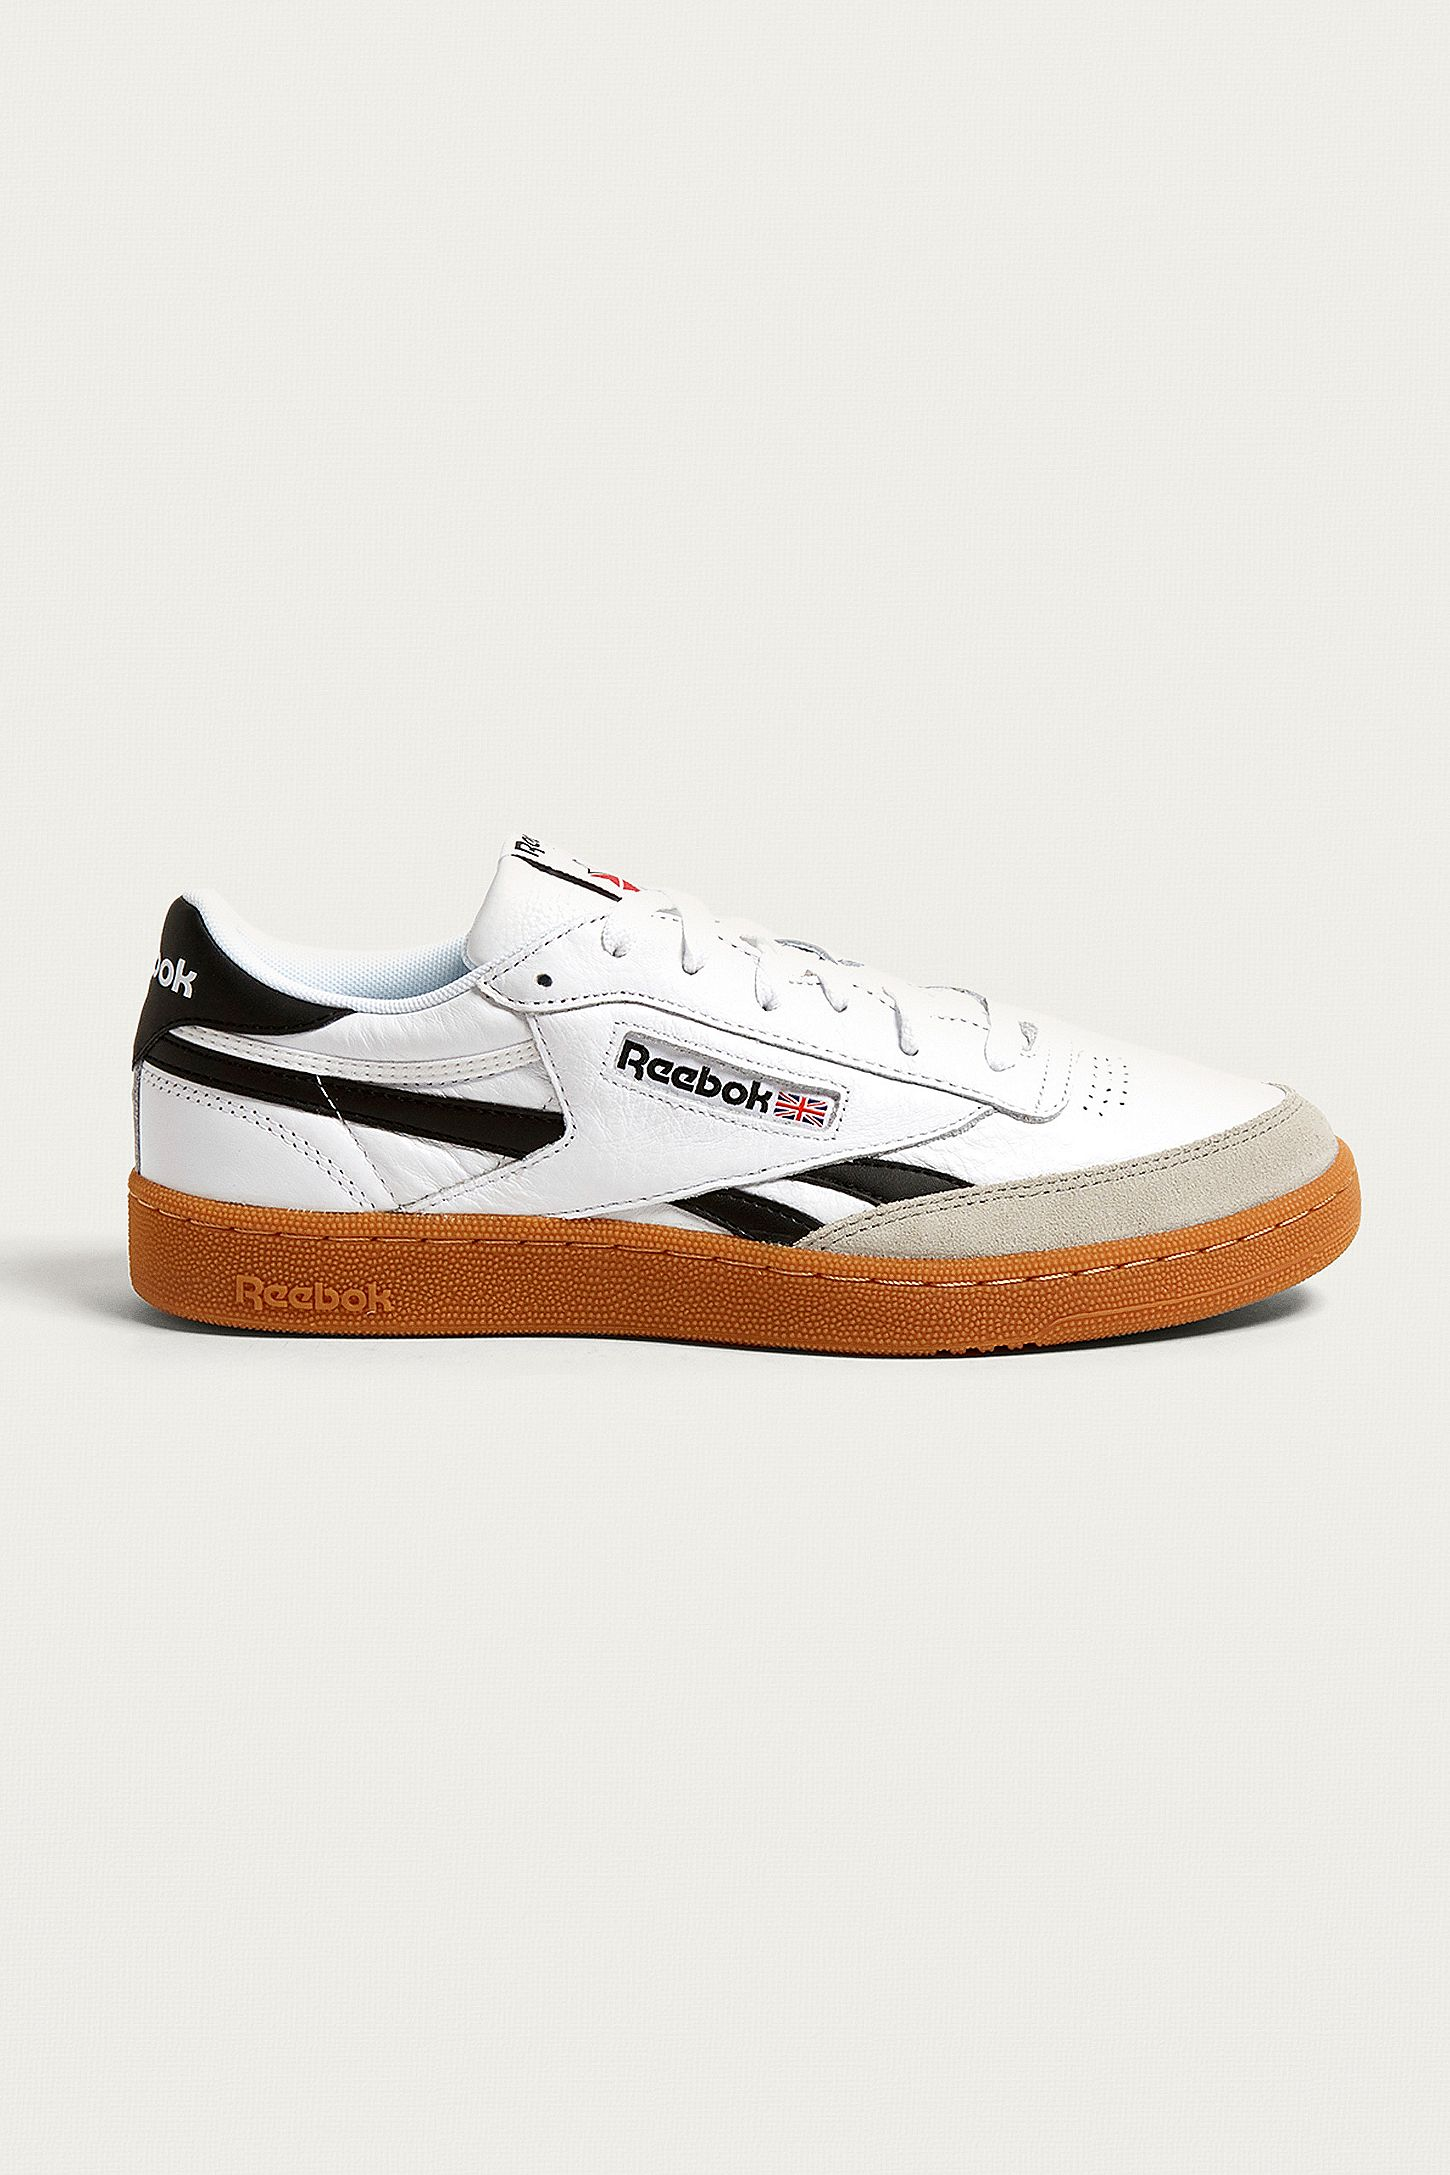 fc2265723 Reebok Revenge Plus Gum Sole Trainers. Click on image to zoom. Hover to  zoom. Double Tap to Zoom